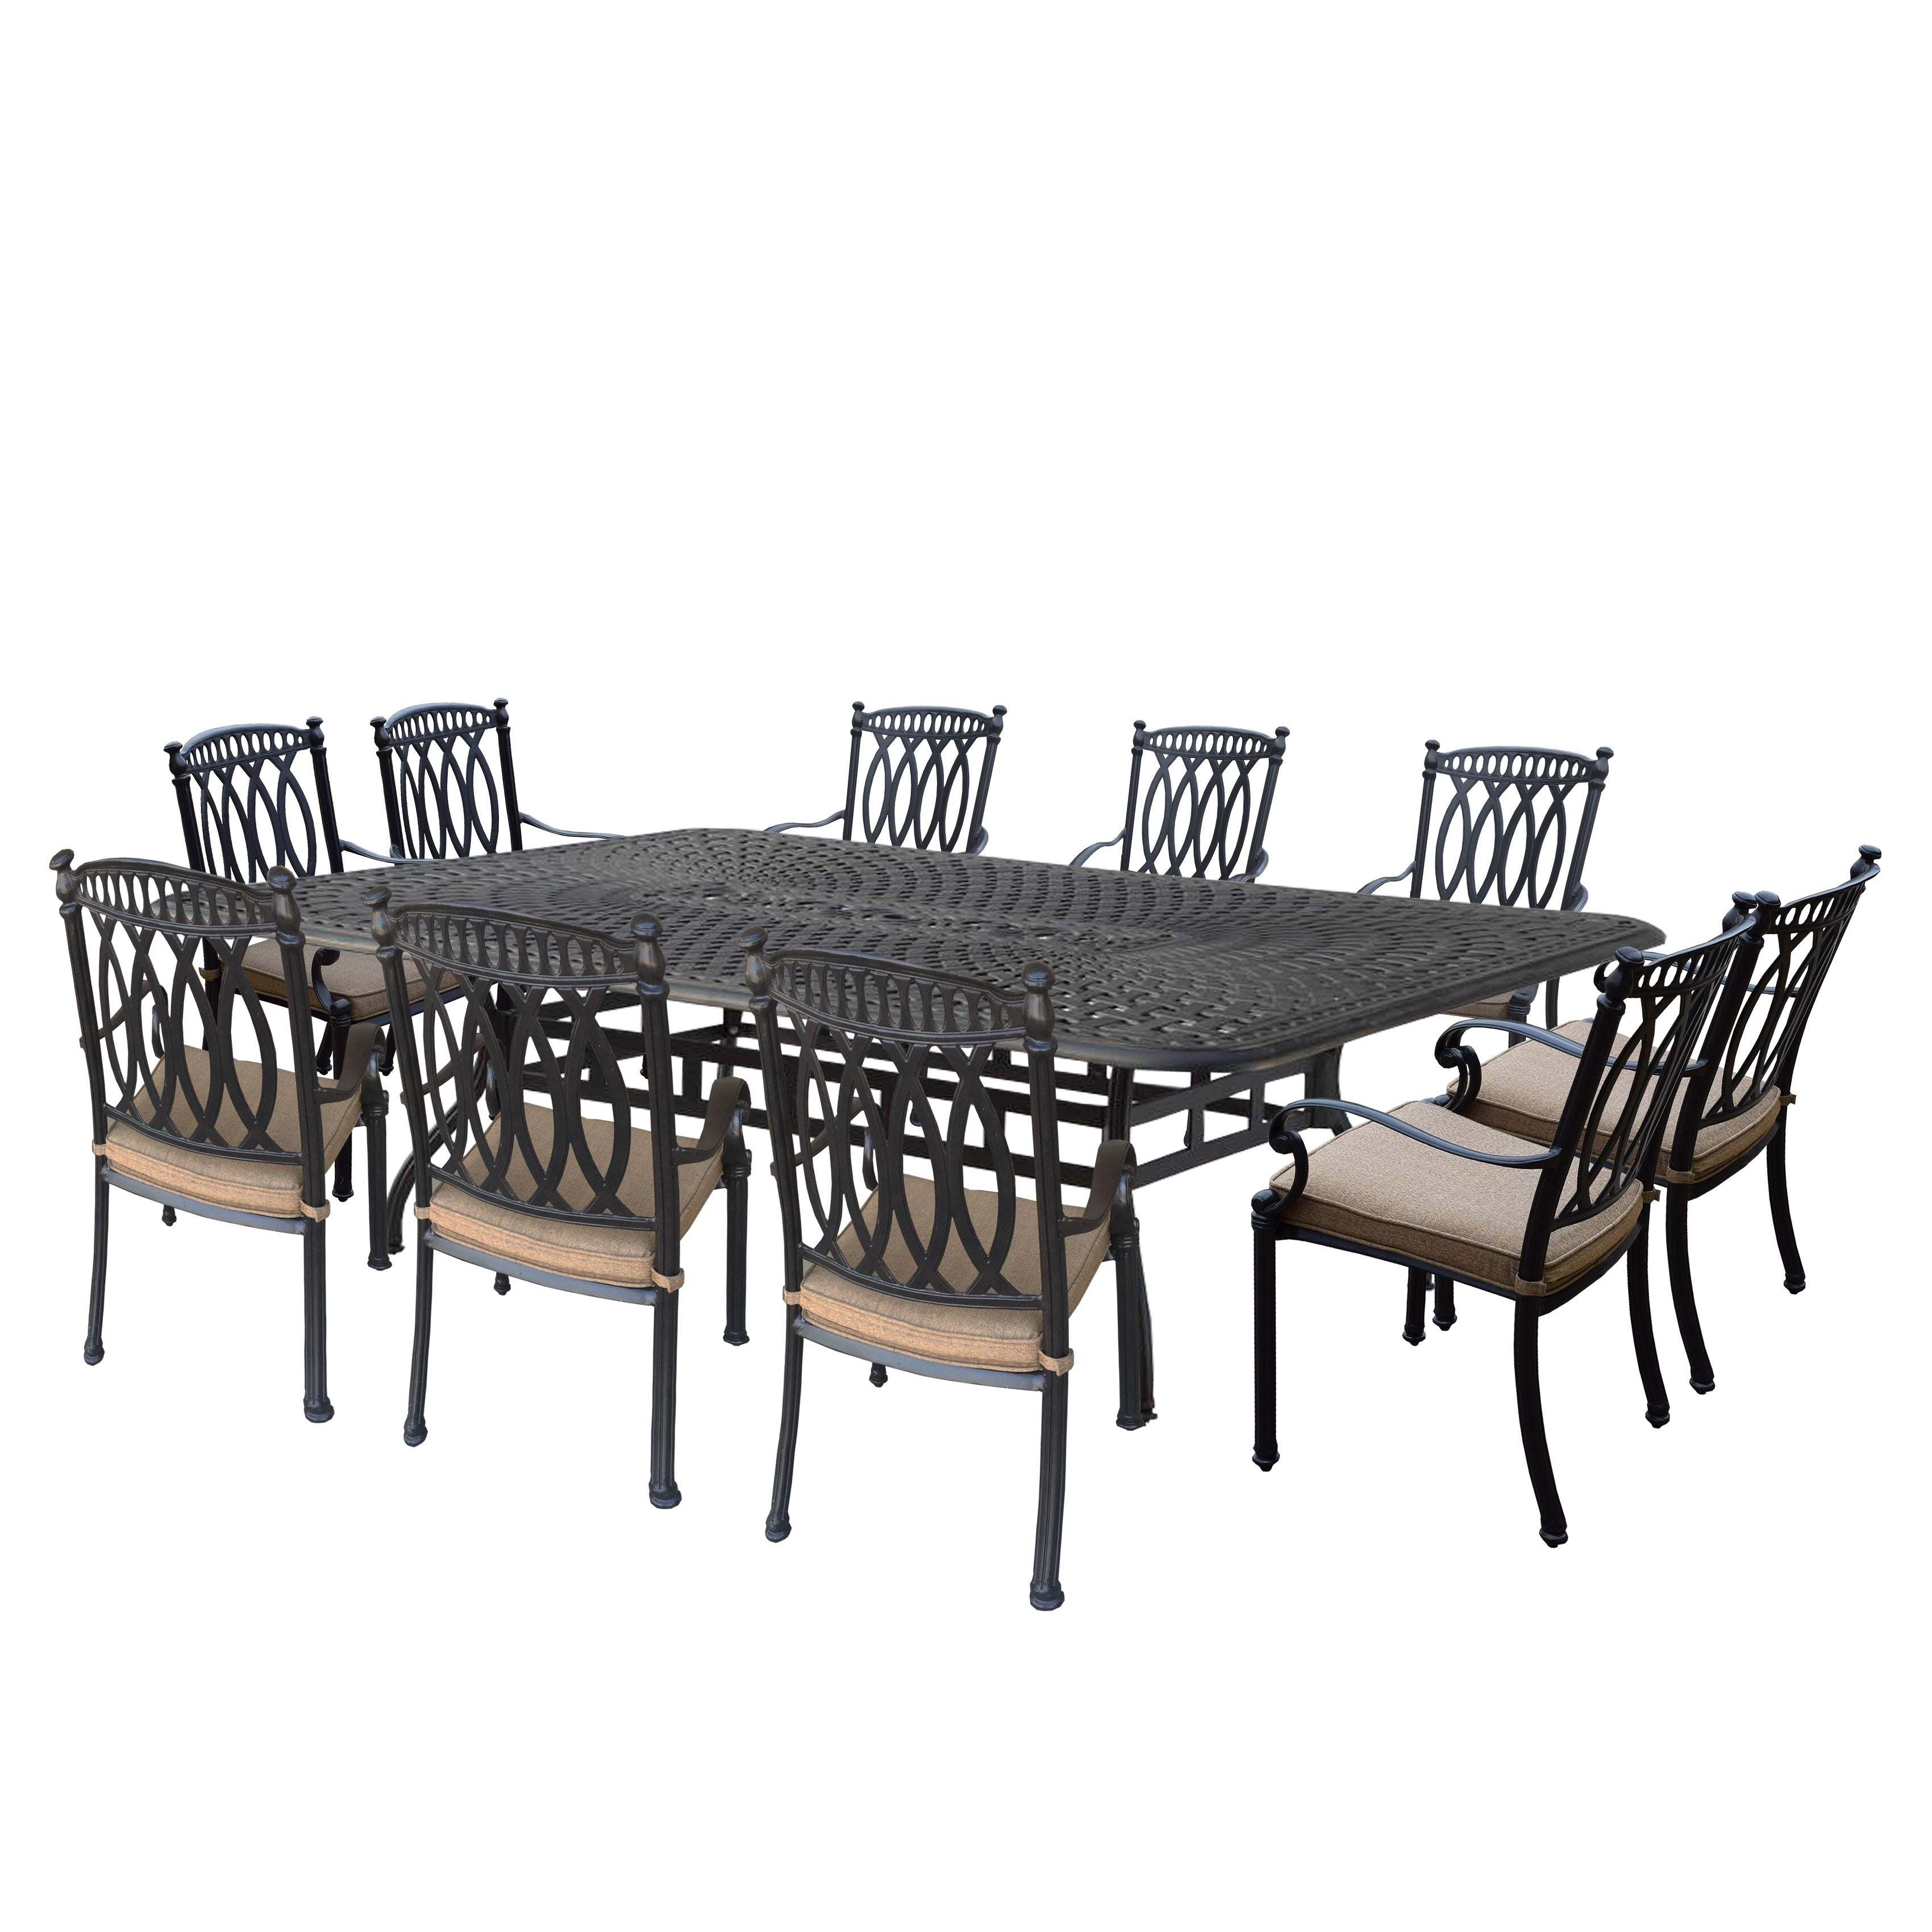 Milan 11 Pc Dining Set with Rectangular Table and 10 Stac...